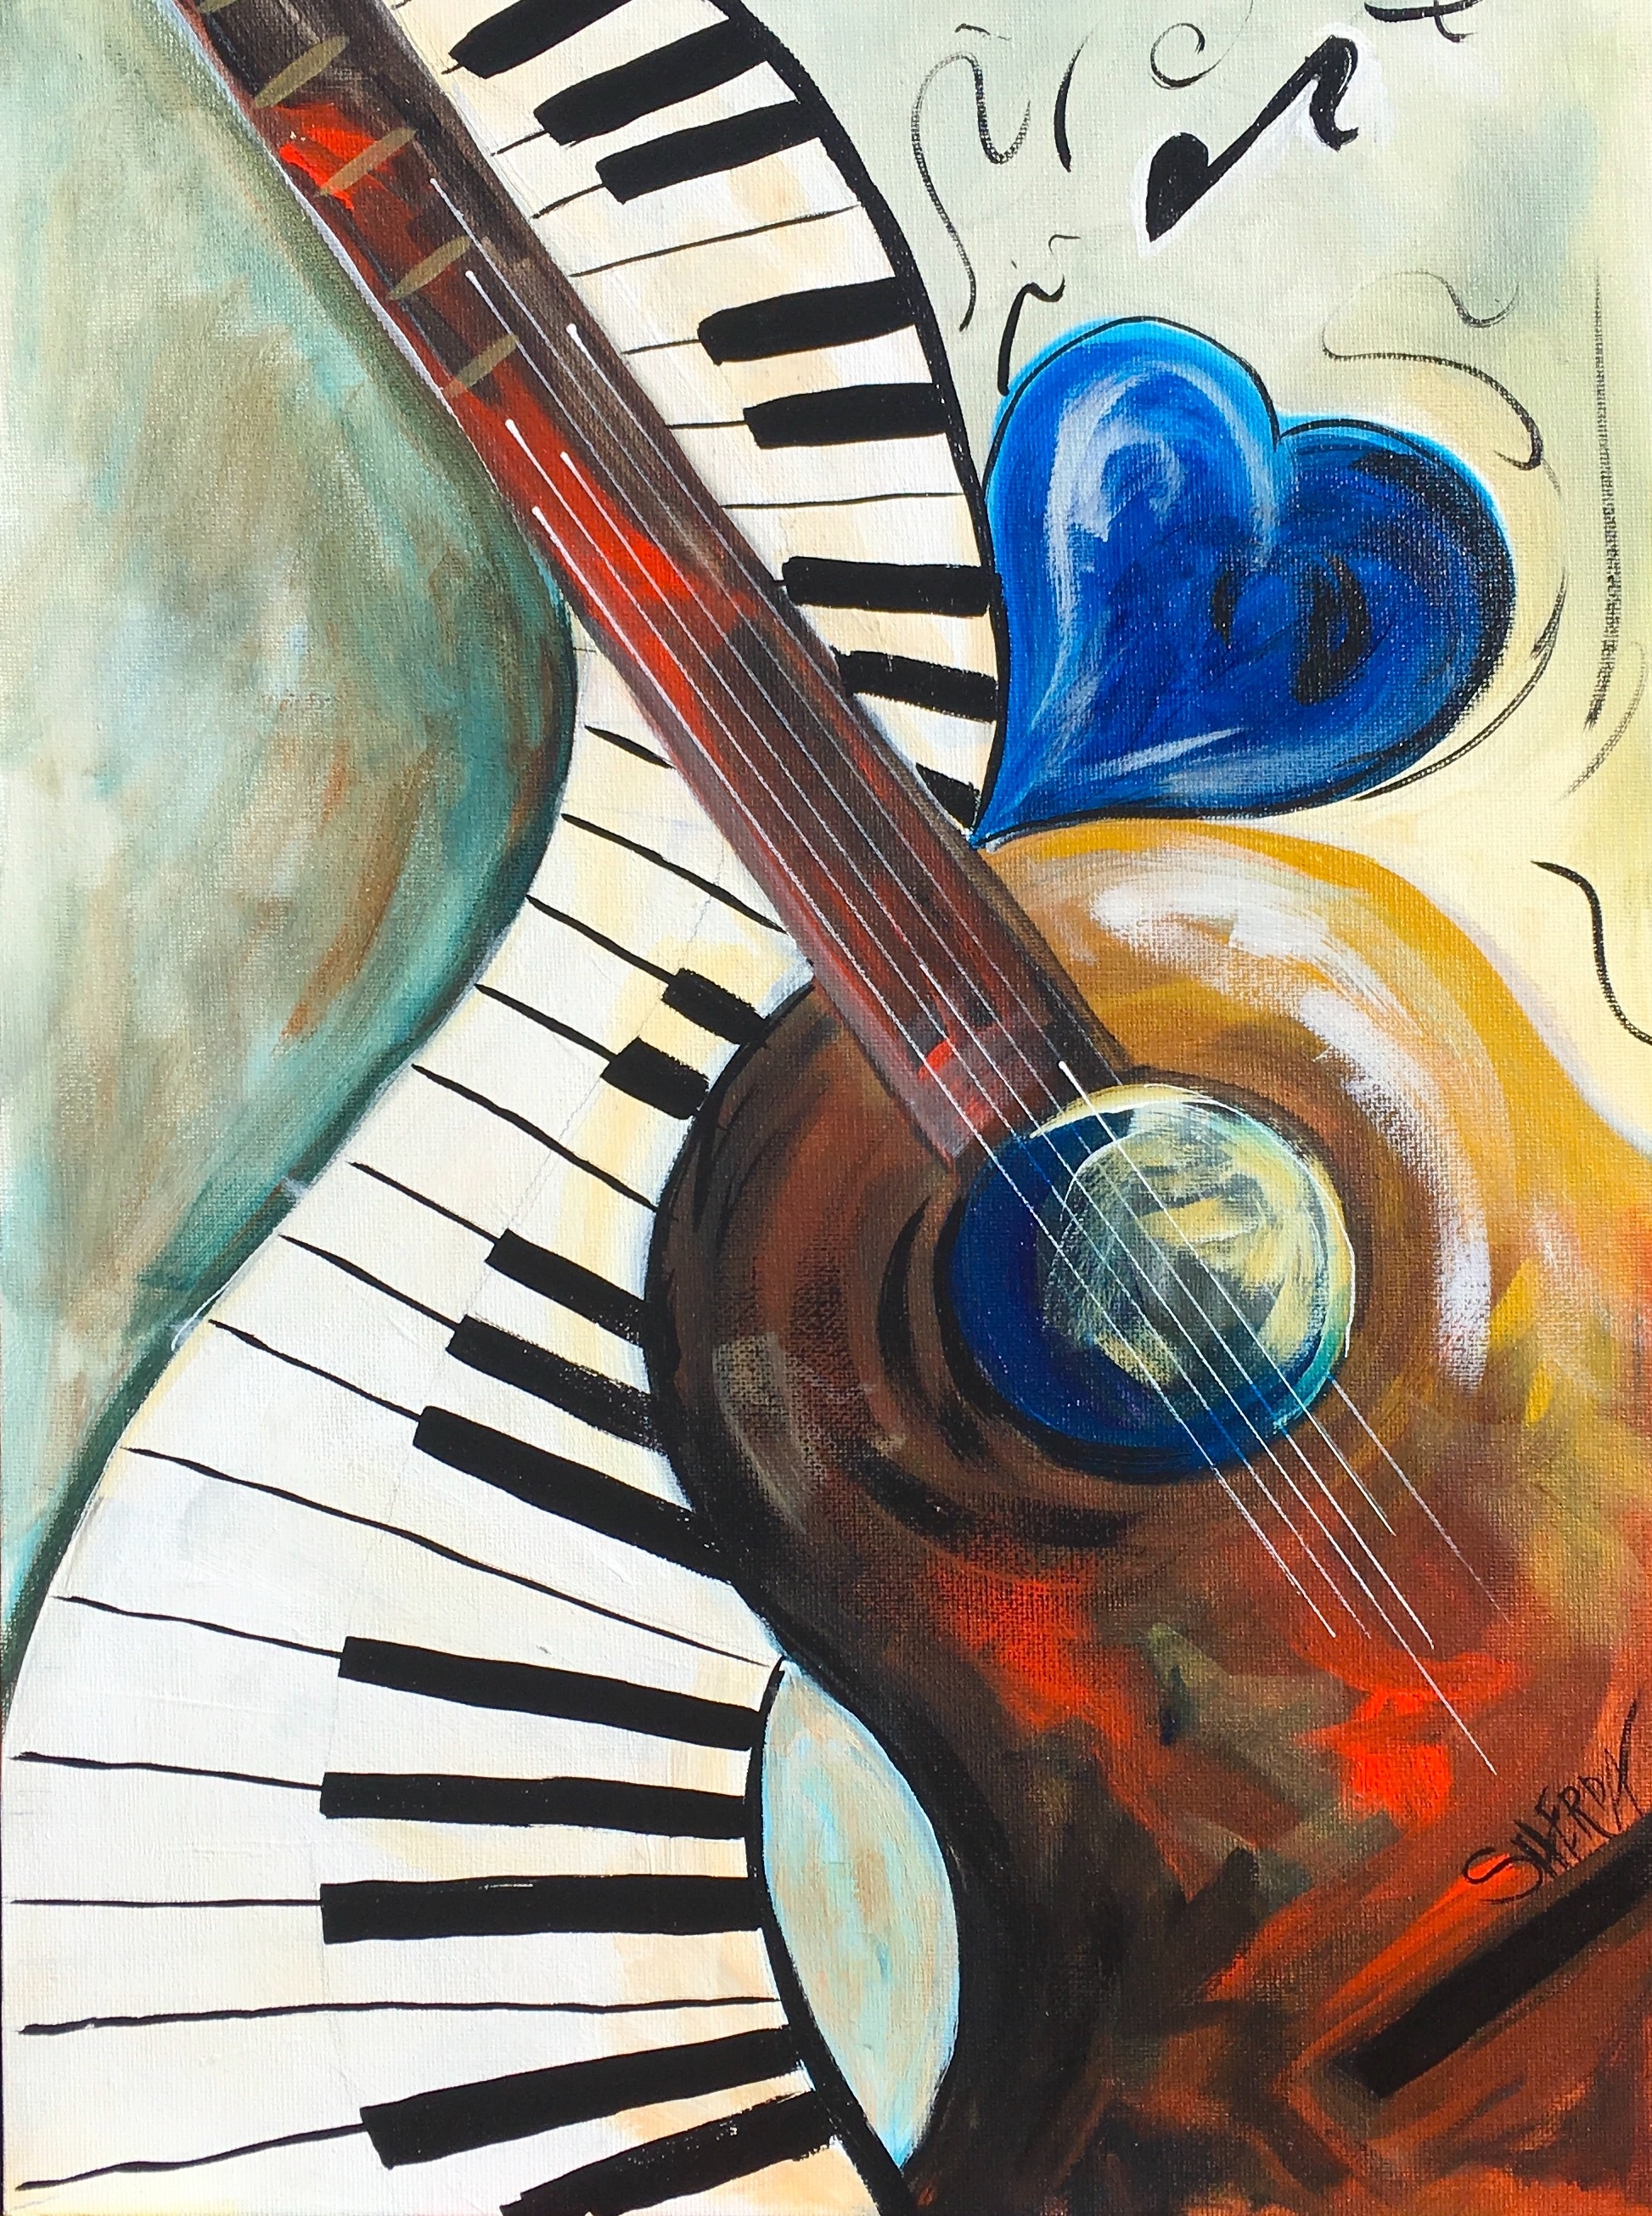 Abstract Music Acrylic Painting On Canvas With Heart Guitar And With Newest Abstract Musical Notes Piano Jazz Wall Artwork (View 6 of 20)